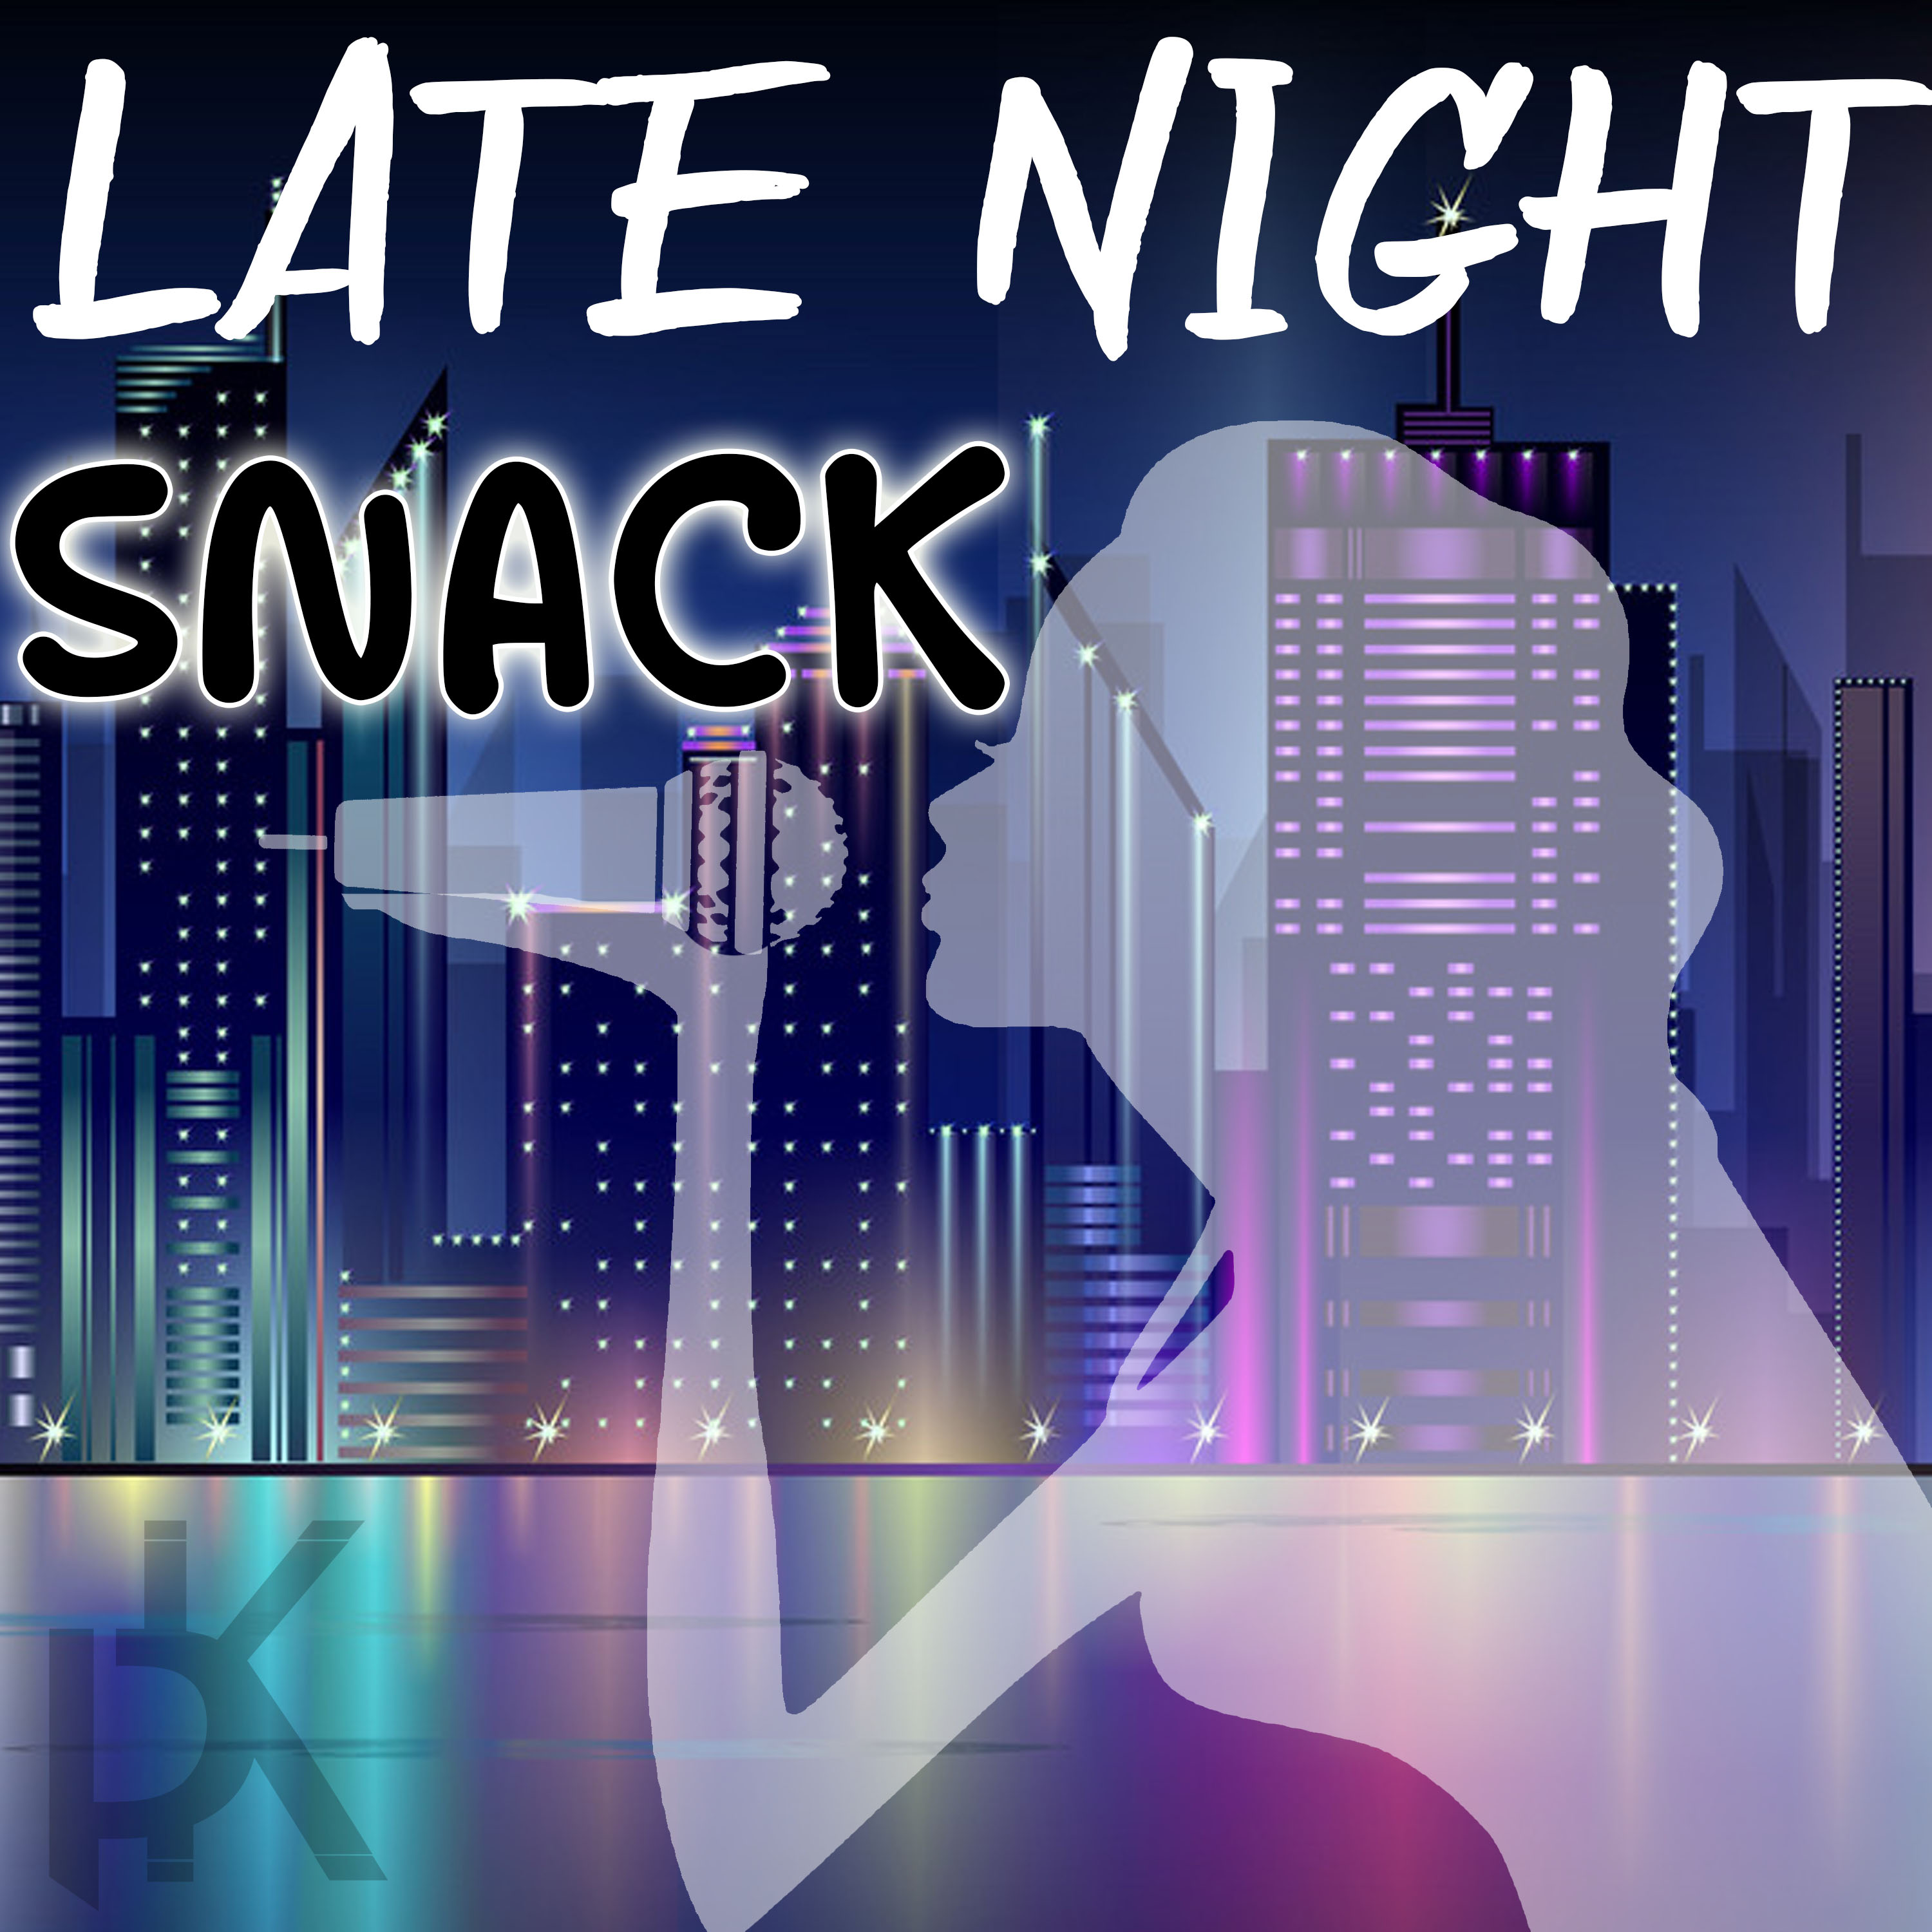 The Late Night Snack Podcast